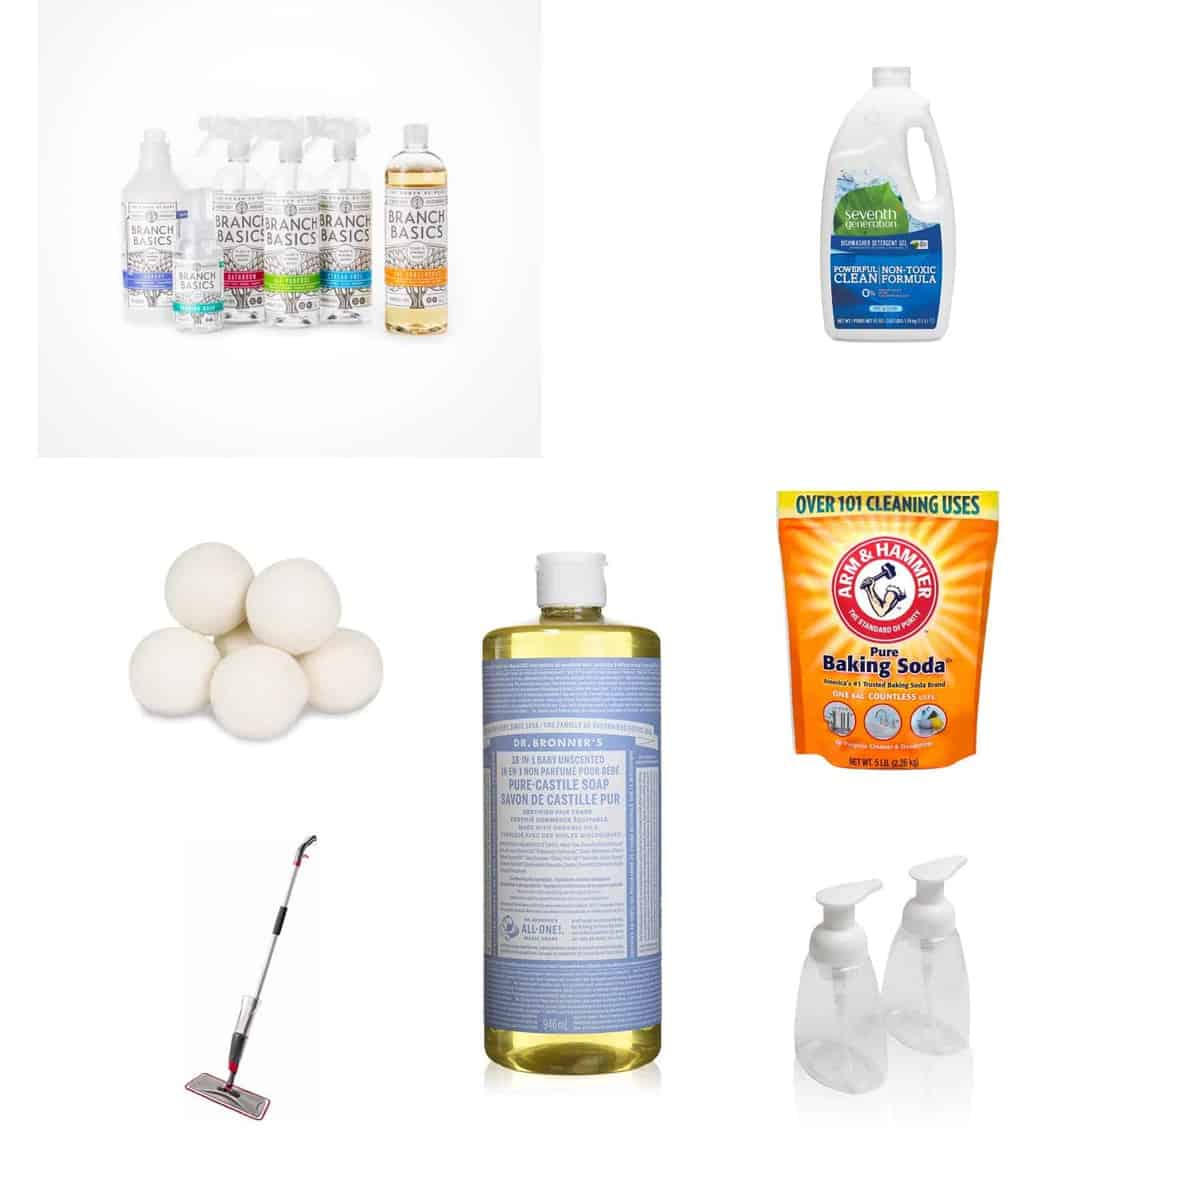 Deadly Household Items: Favorite Non-Toxic Household Cleaning Products